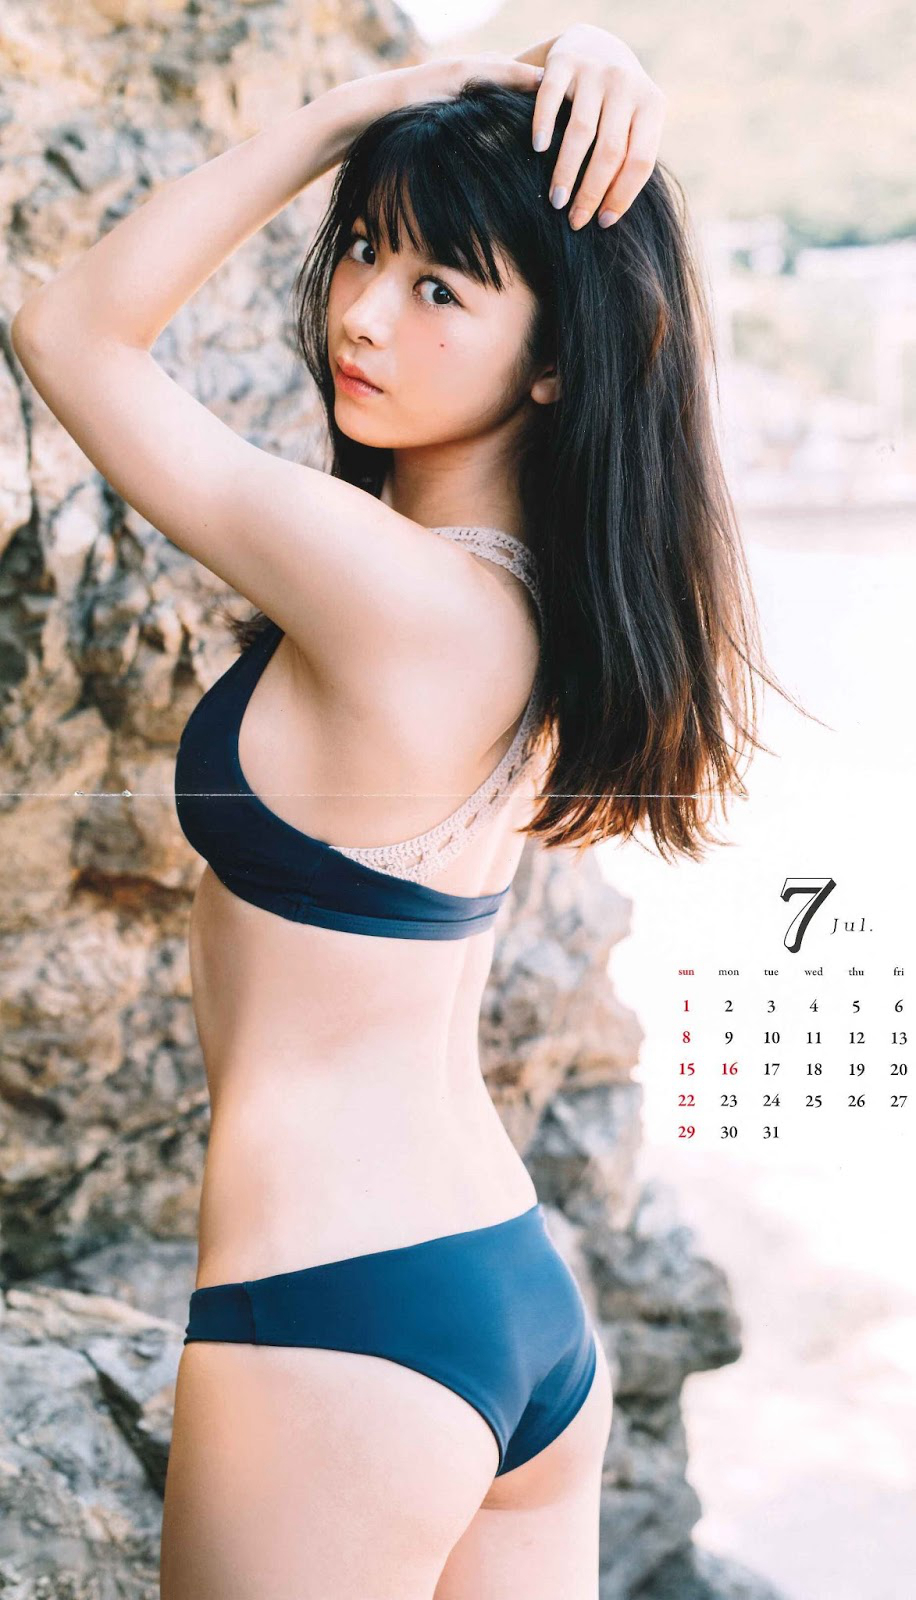 Fumika-CalendarBook-016.jpg